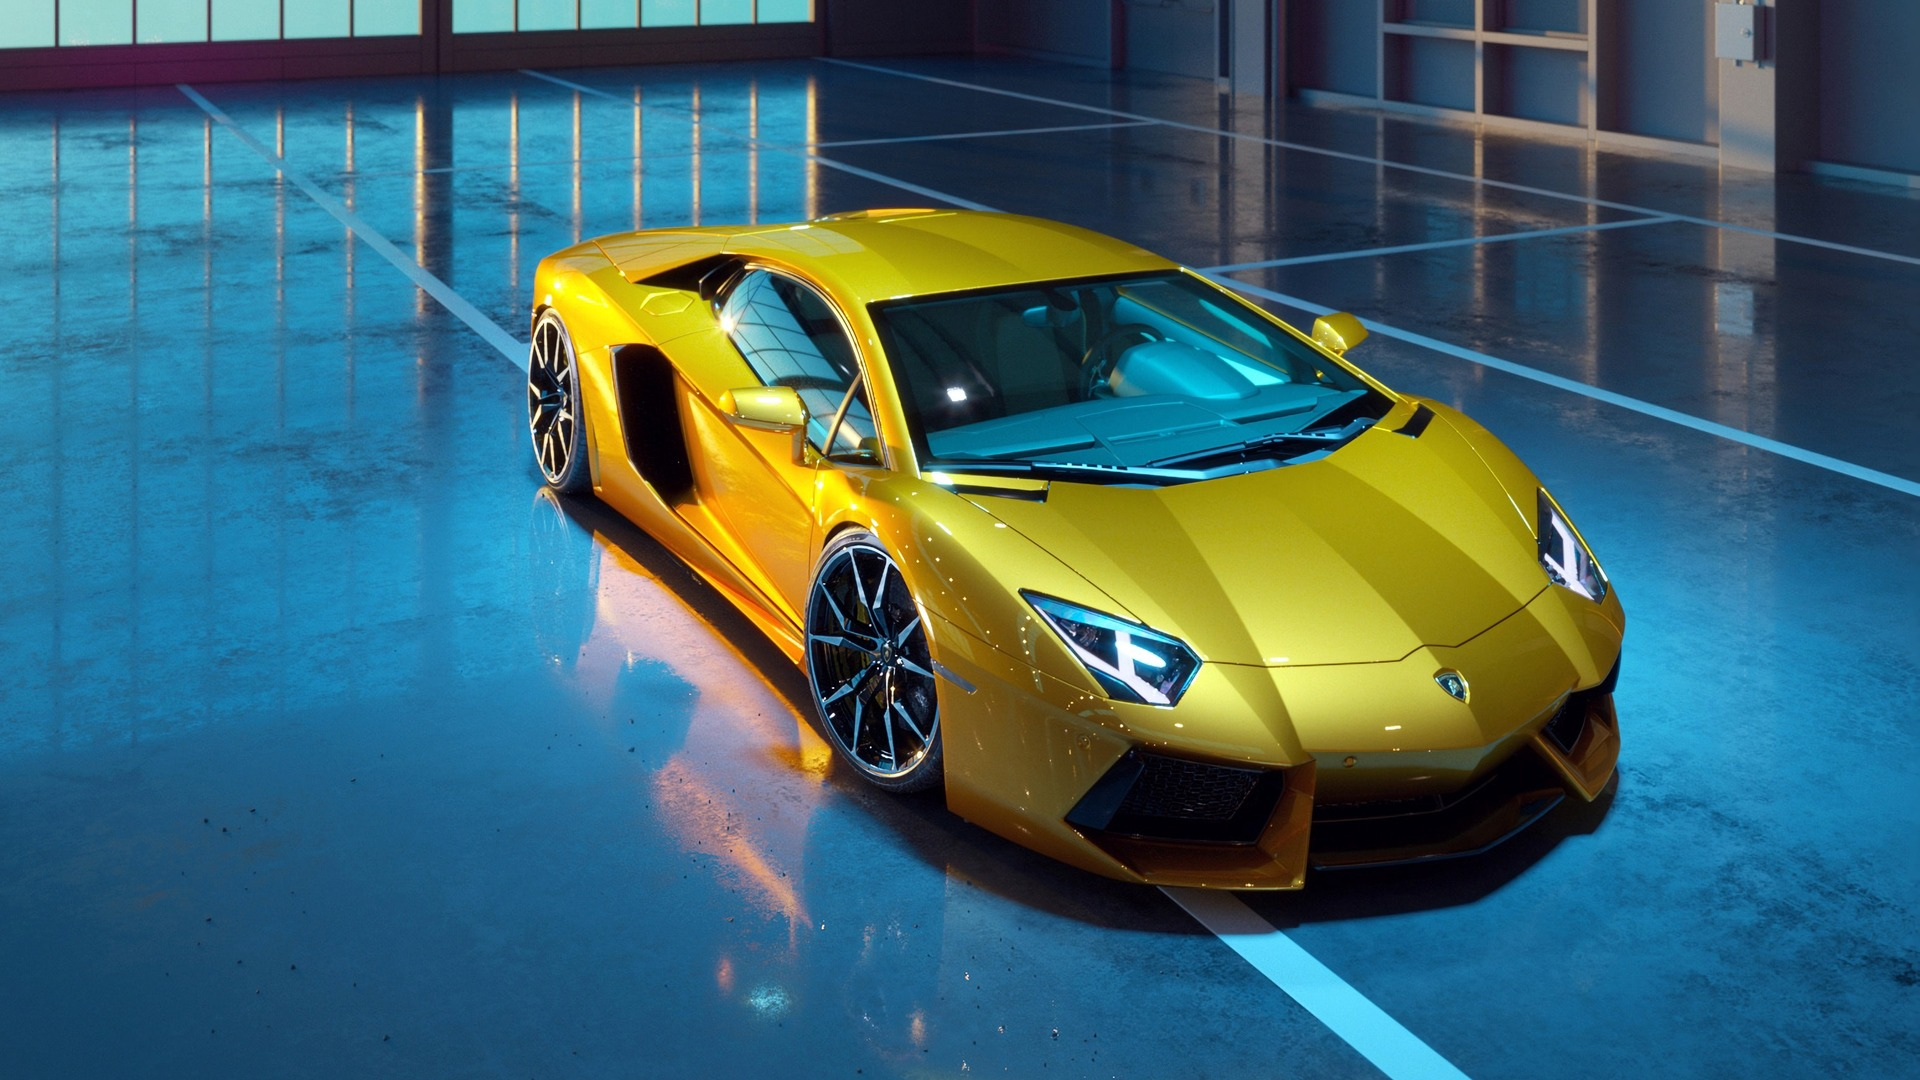 1920x1080 Yellow Lamborghini Aventador New Laptop Full Hd 1080p Hd 4k Wallpapers Images Backgrounds Photos And Pictures